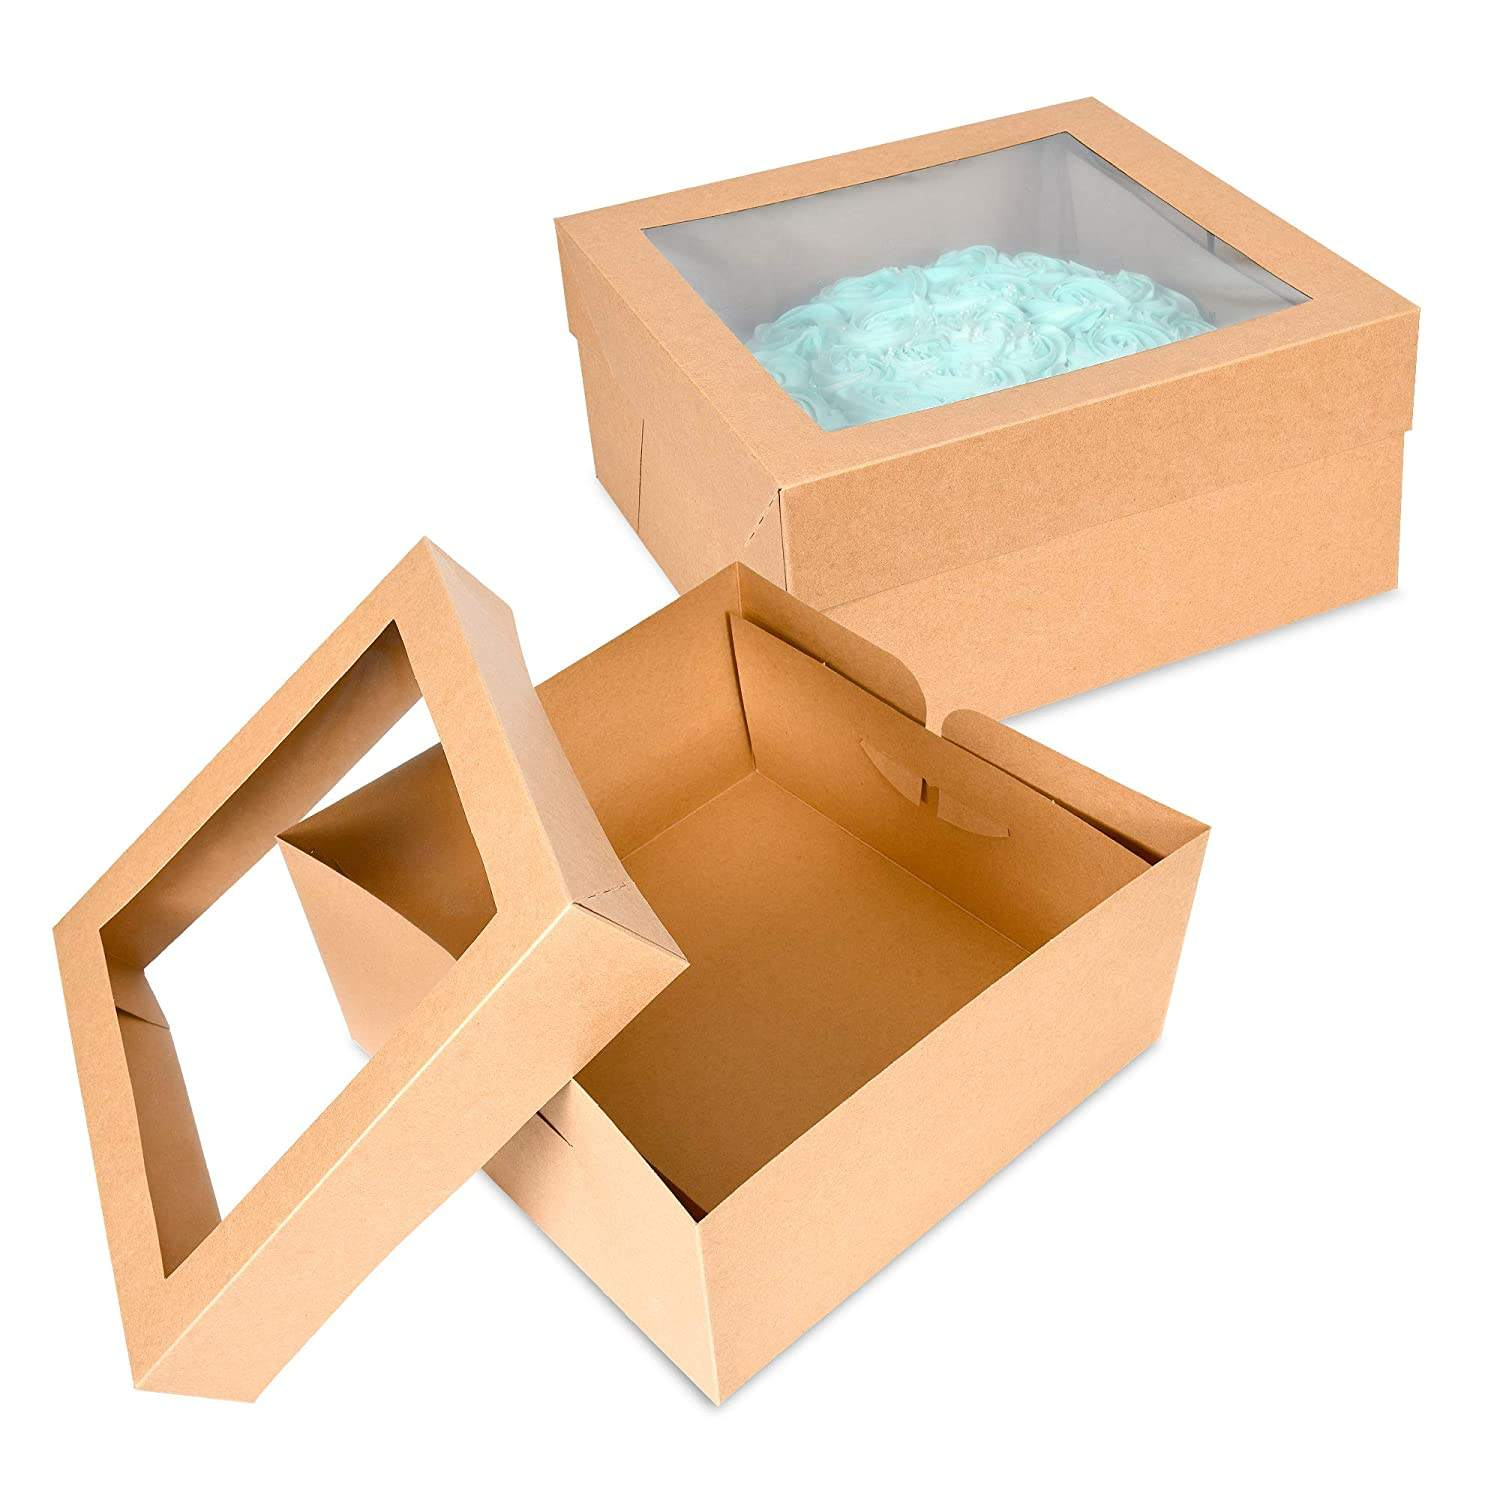 "Cake Boxes 12""X12""X6"" with Pvc Window Great for Cakes, Cupcakes, Donuts, Pies, Cookies, Pastries"